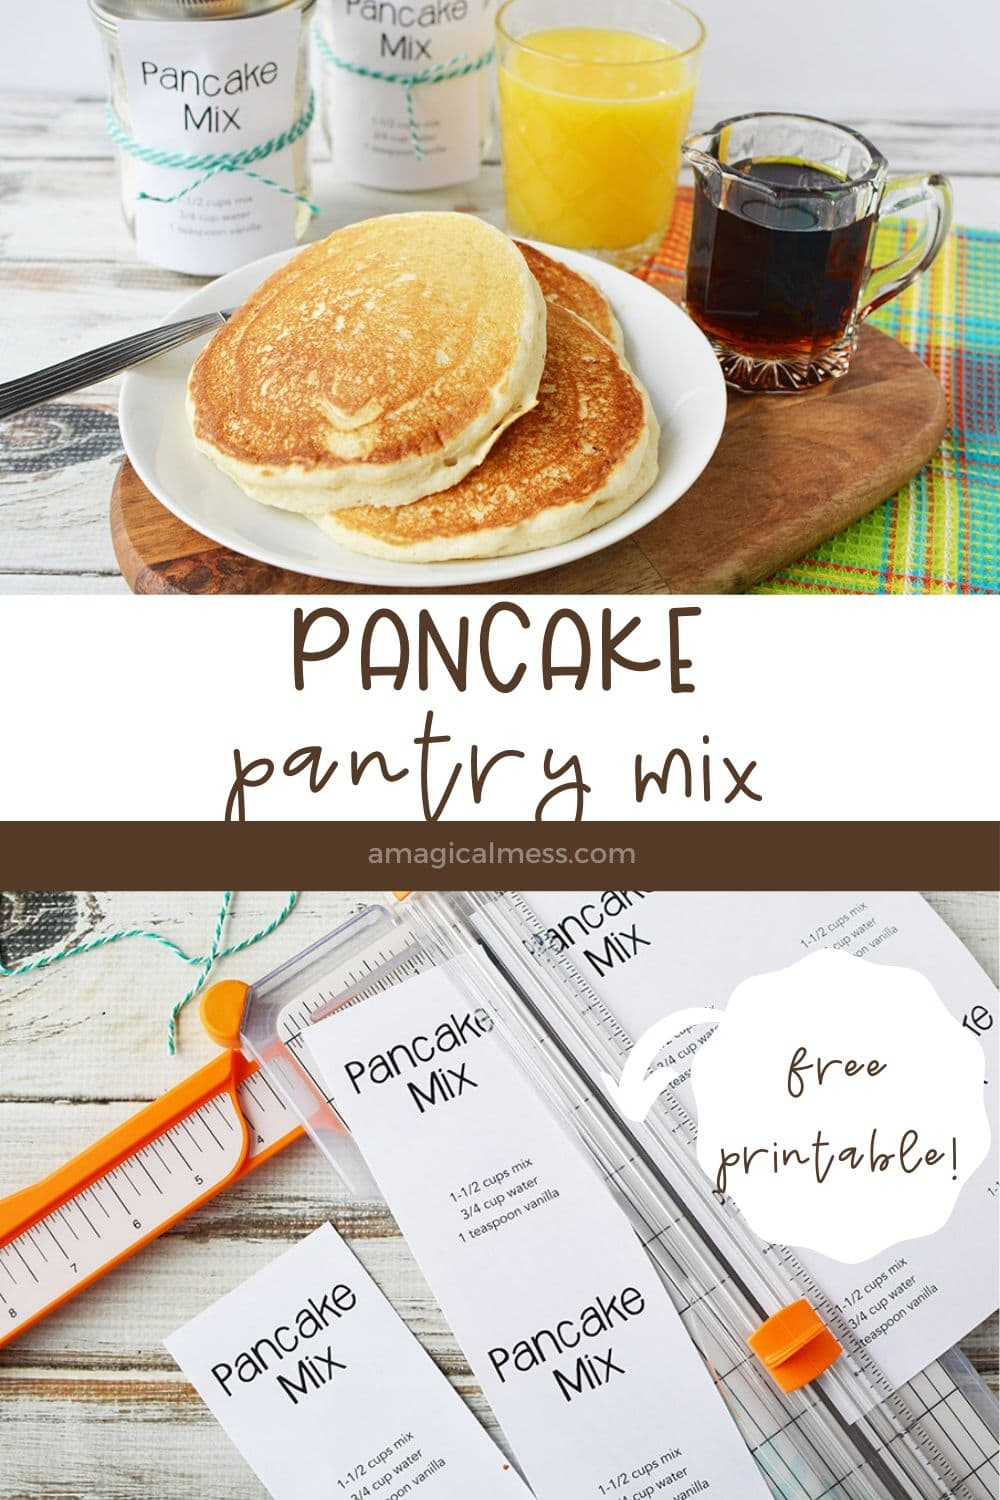 pancakes on plate with other breakfast foods